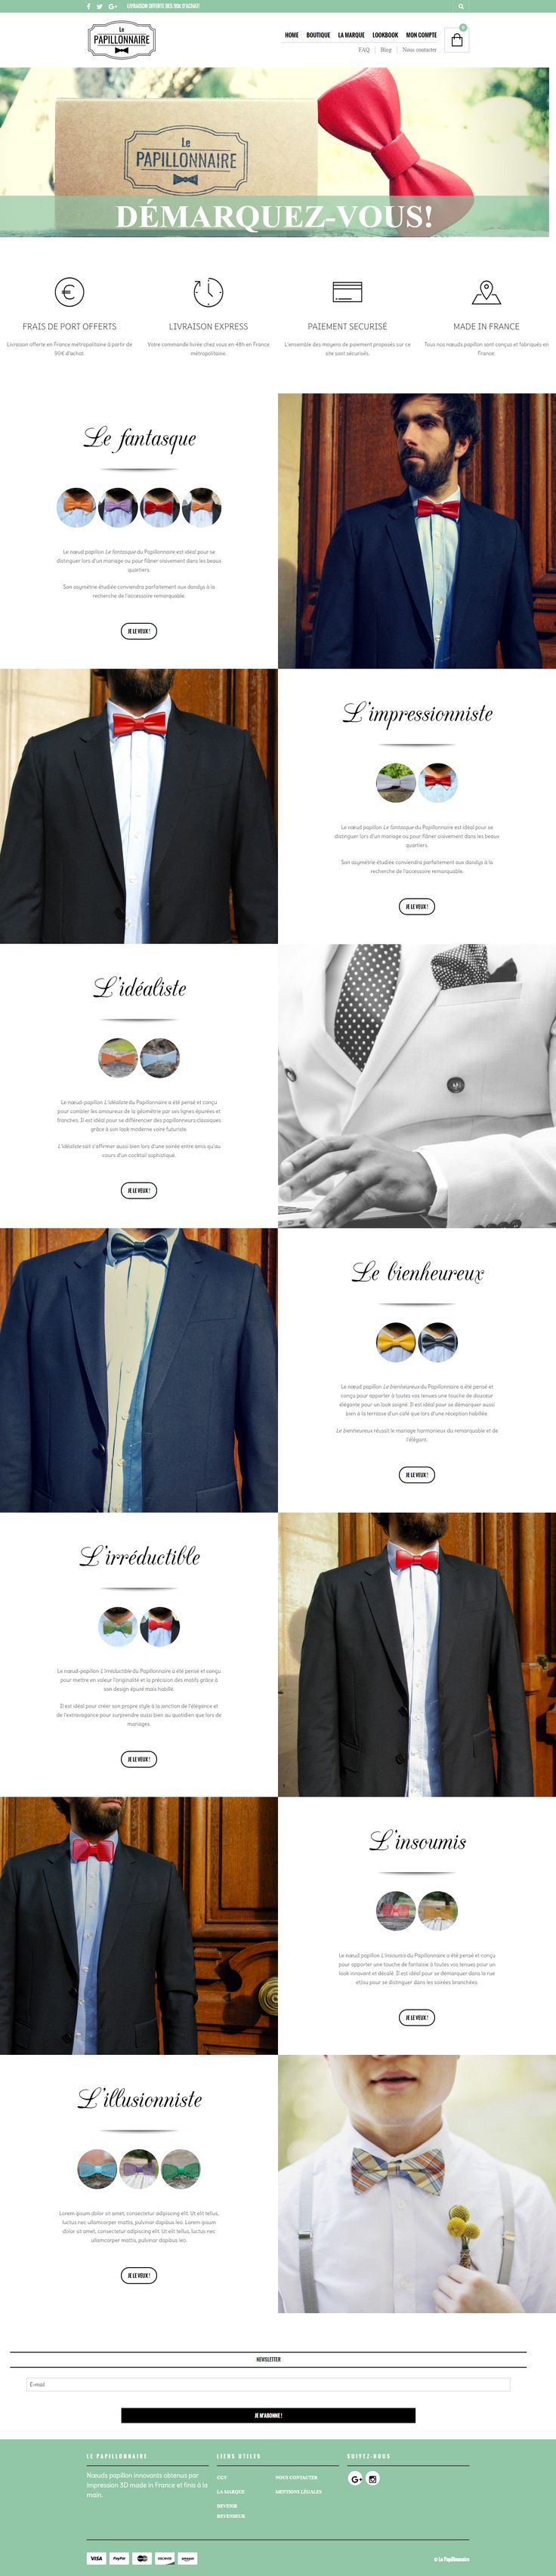 lepapillonnaire.com, powered by the top-selling premium WordPress theme, The Retailer #wordpress #ecommerce #showcase #coolsites #ecommerce  https://themeforest.net/item/the-retailer-responsive-wordpress-theme/4287447?utm_source=pinterest.com&utm_medium=social&utm_content=papillonaire&utm_campaign=showcase